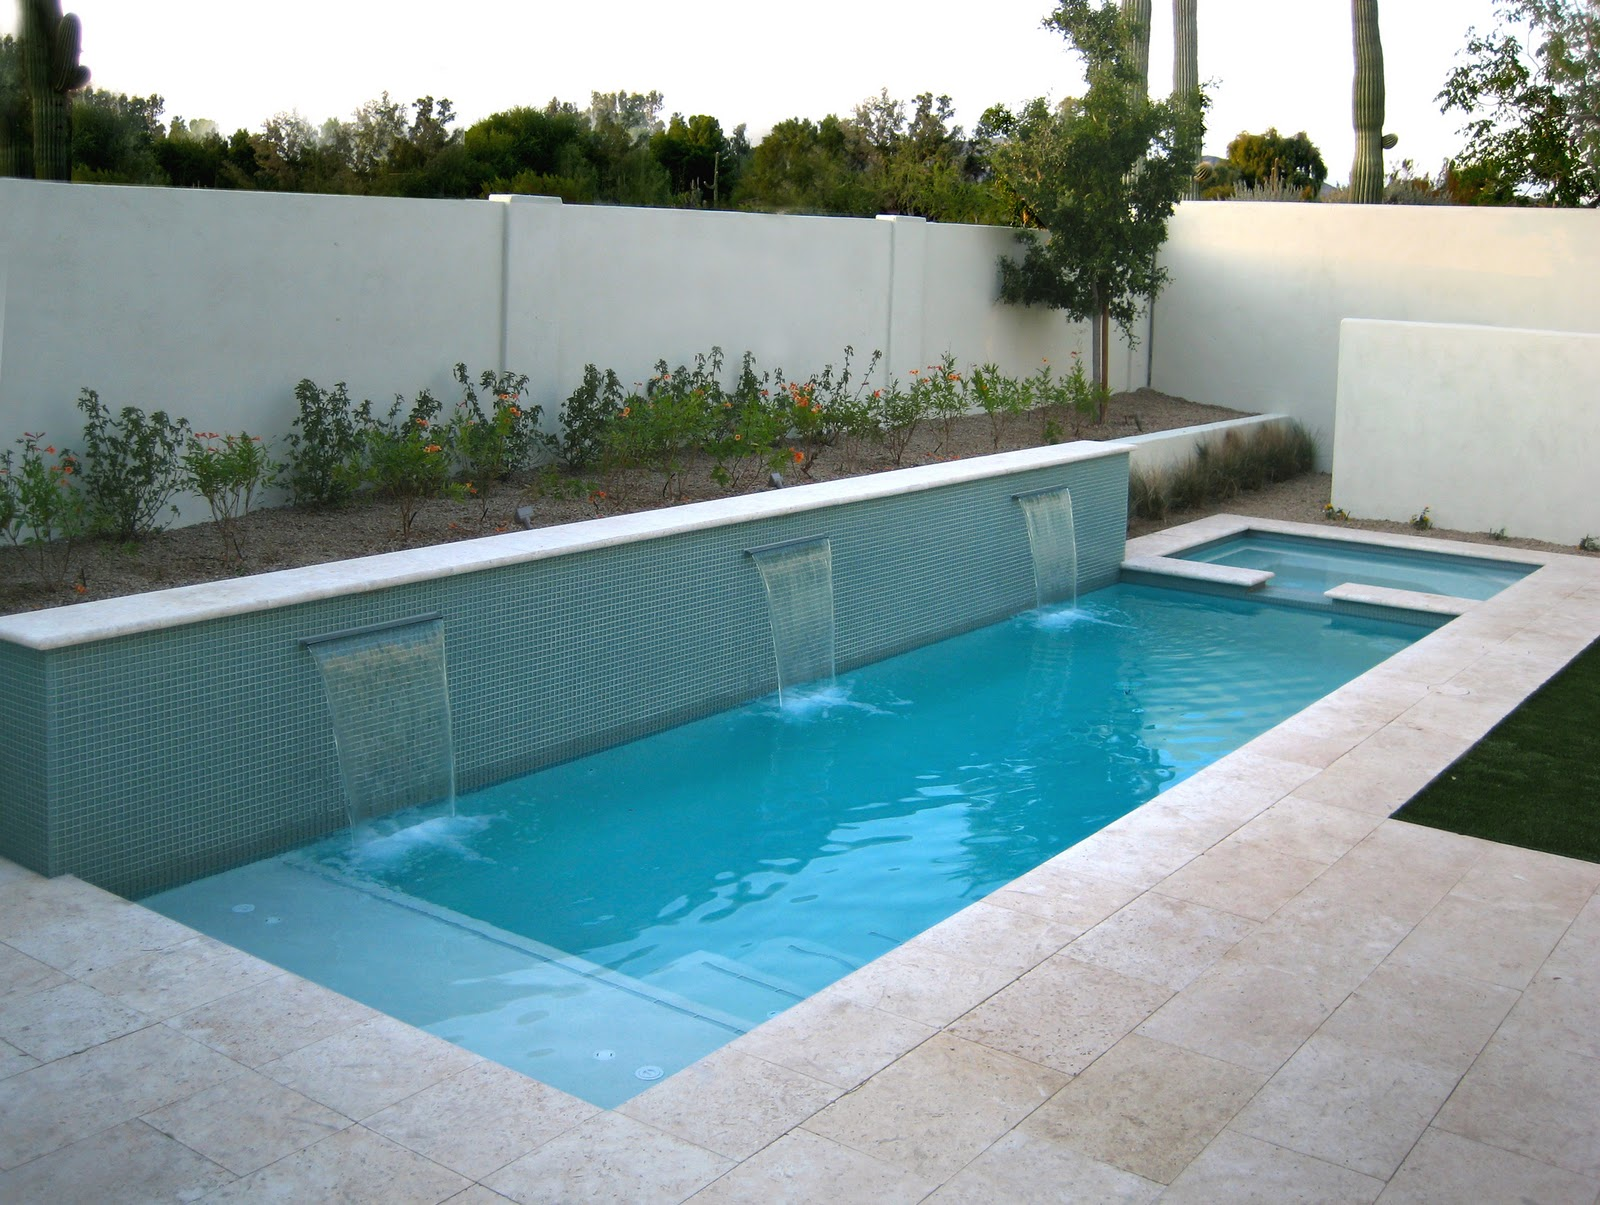 25 fabulous small backyard designs with swimming pool for Backyard swimming pool designs